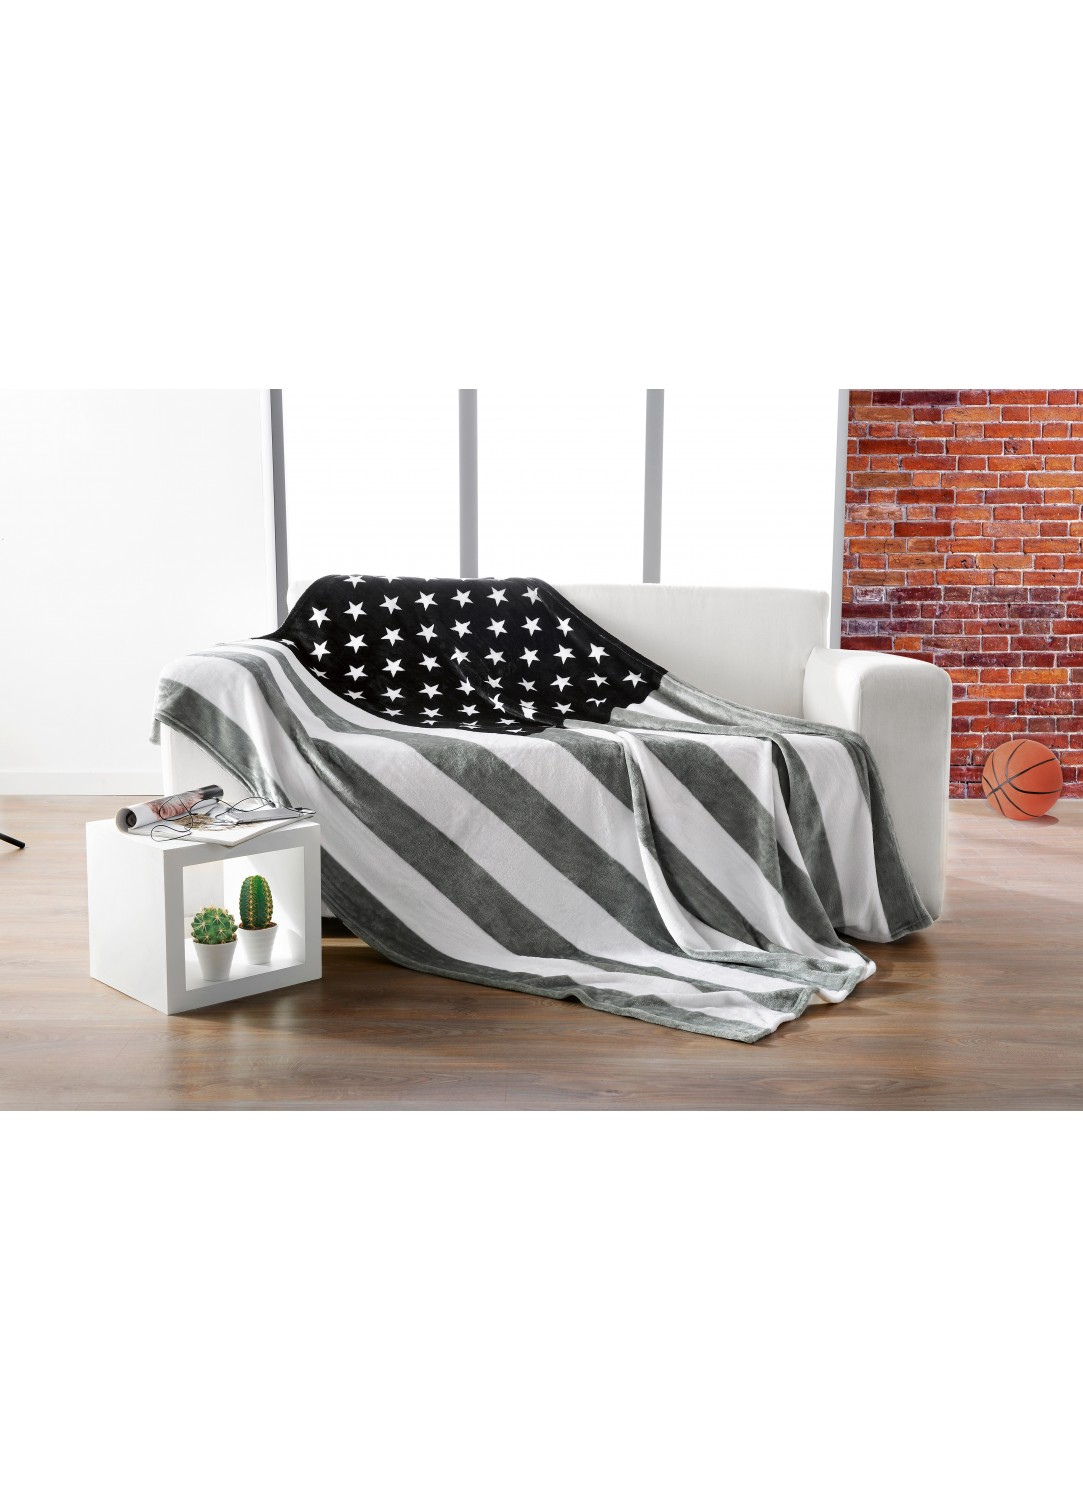 plaid usa gris homemaison vente en ligne couvertures et plaids. Black Bedroom Furniture Sets. Home Design Ideas